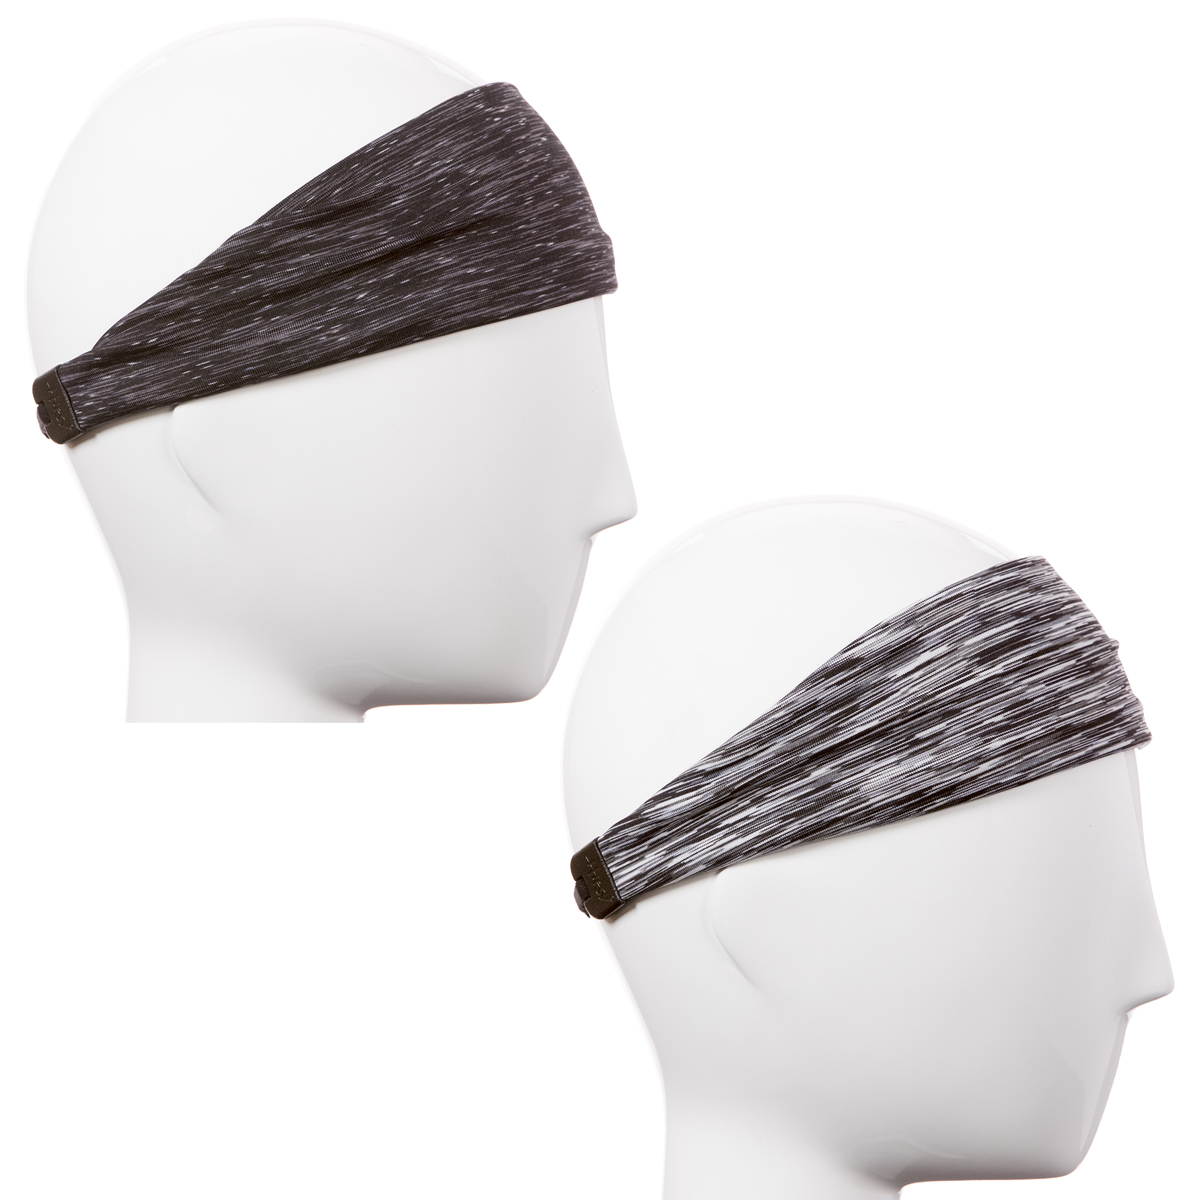 Hipsy Xflex Adjustable & Stretchy Sports Sweat Running Headbands for Women Gift Pack (Black & Grey 2pk)